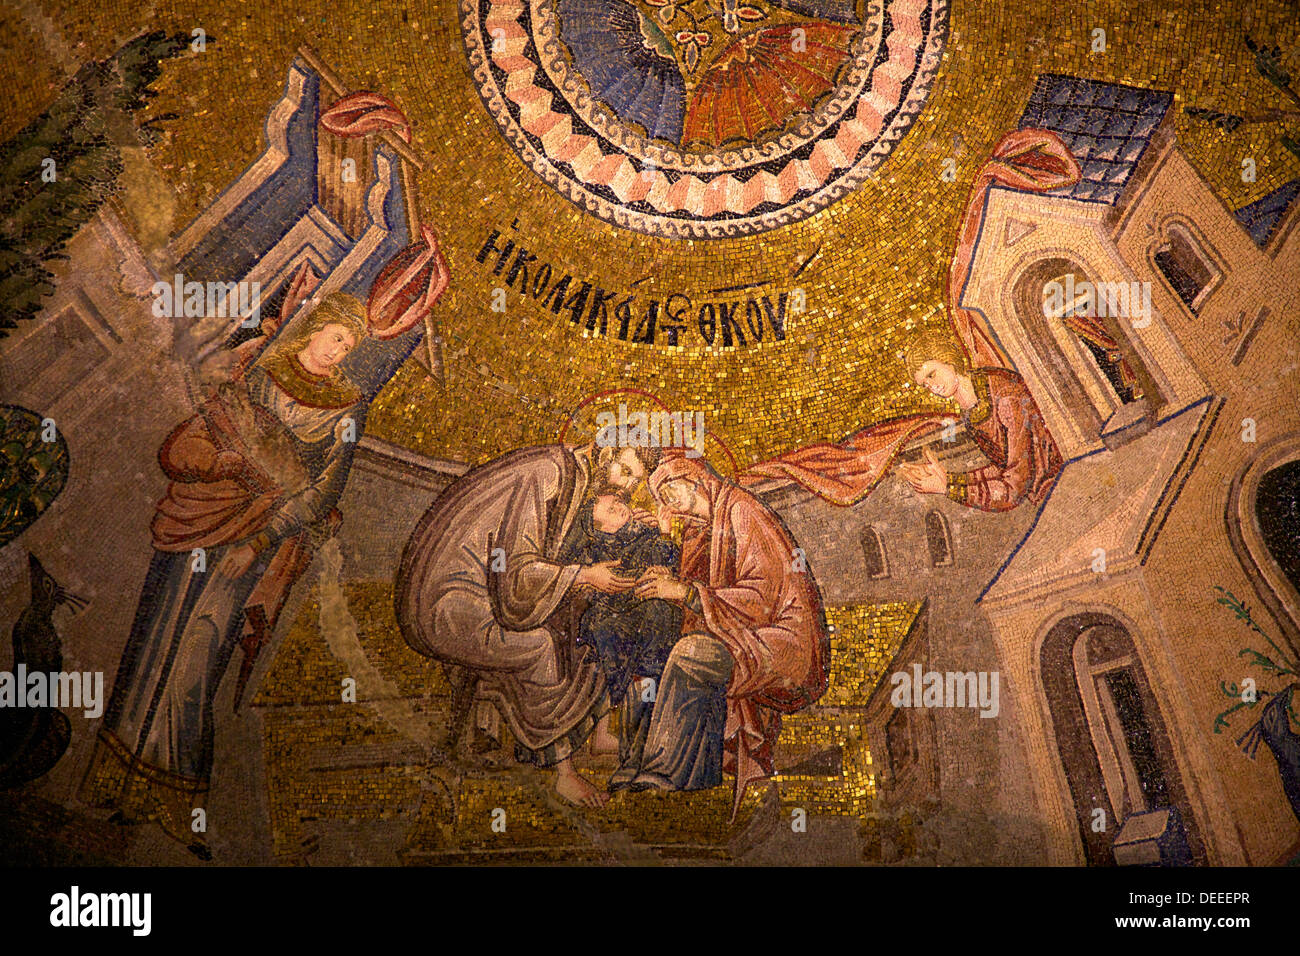 Mosaic depicting Infancy of Christ, interior of Church of St. Saviour in Chora (Kariye Camii), UNESCO, Istanbul, Turkey - Stock Image